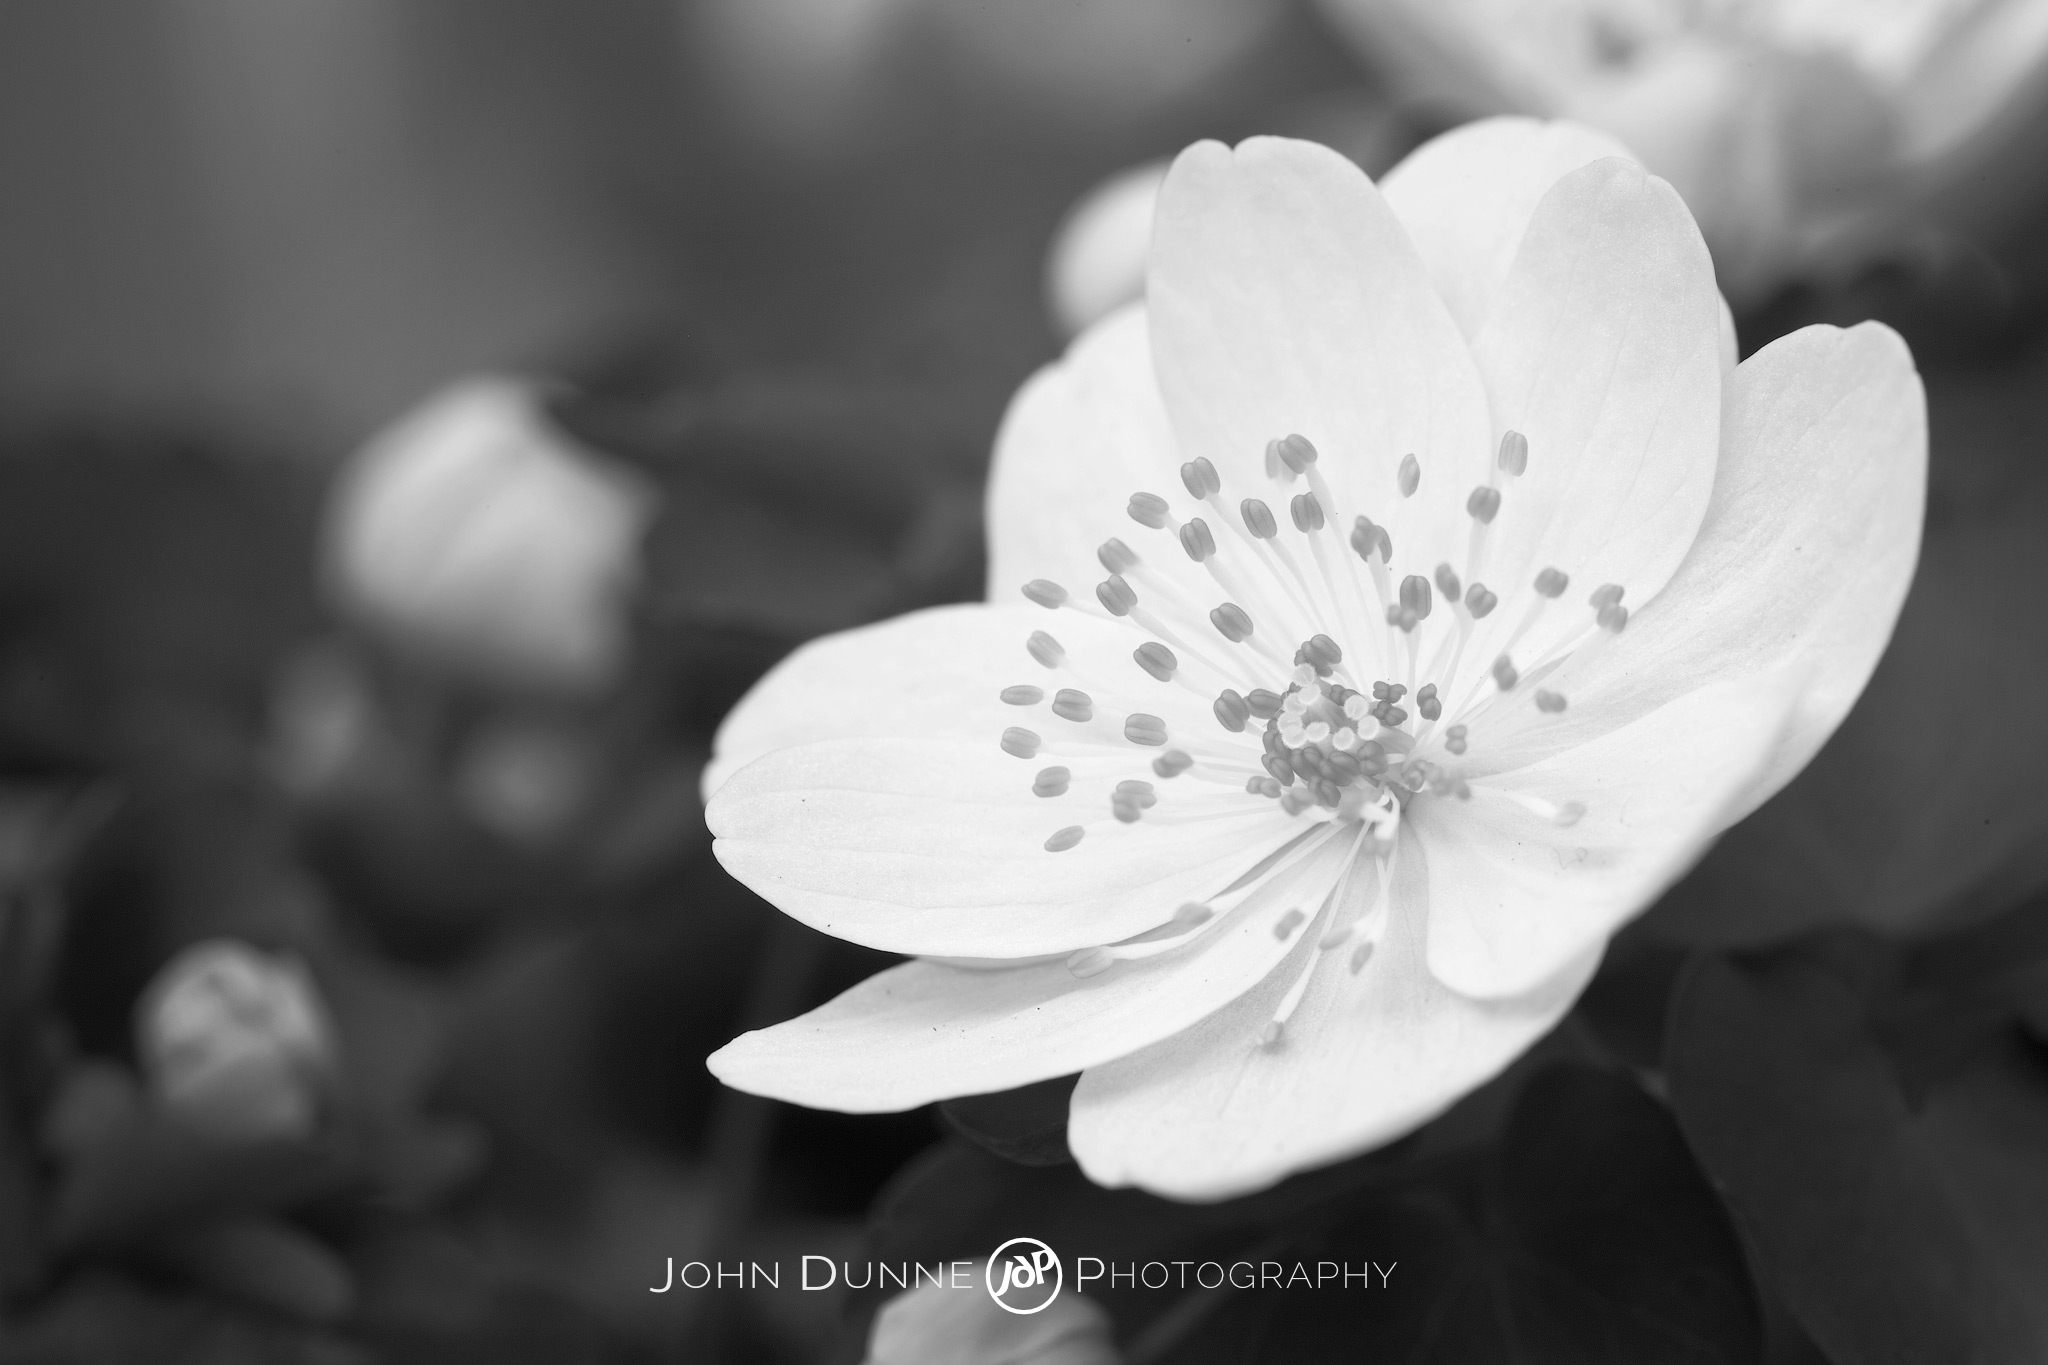 Perfect White by John Dunne 2009.